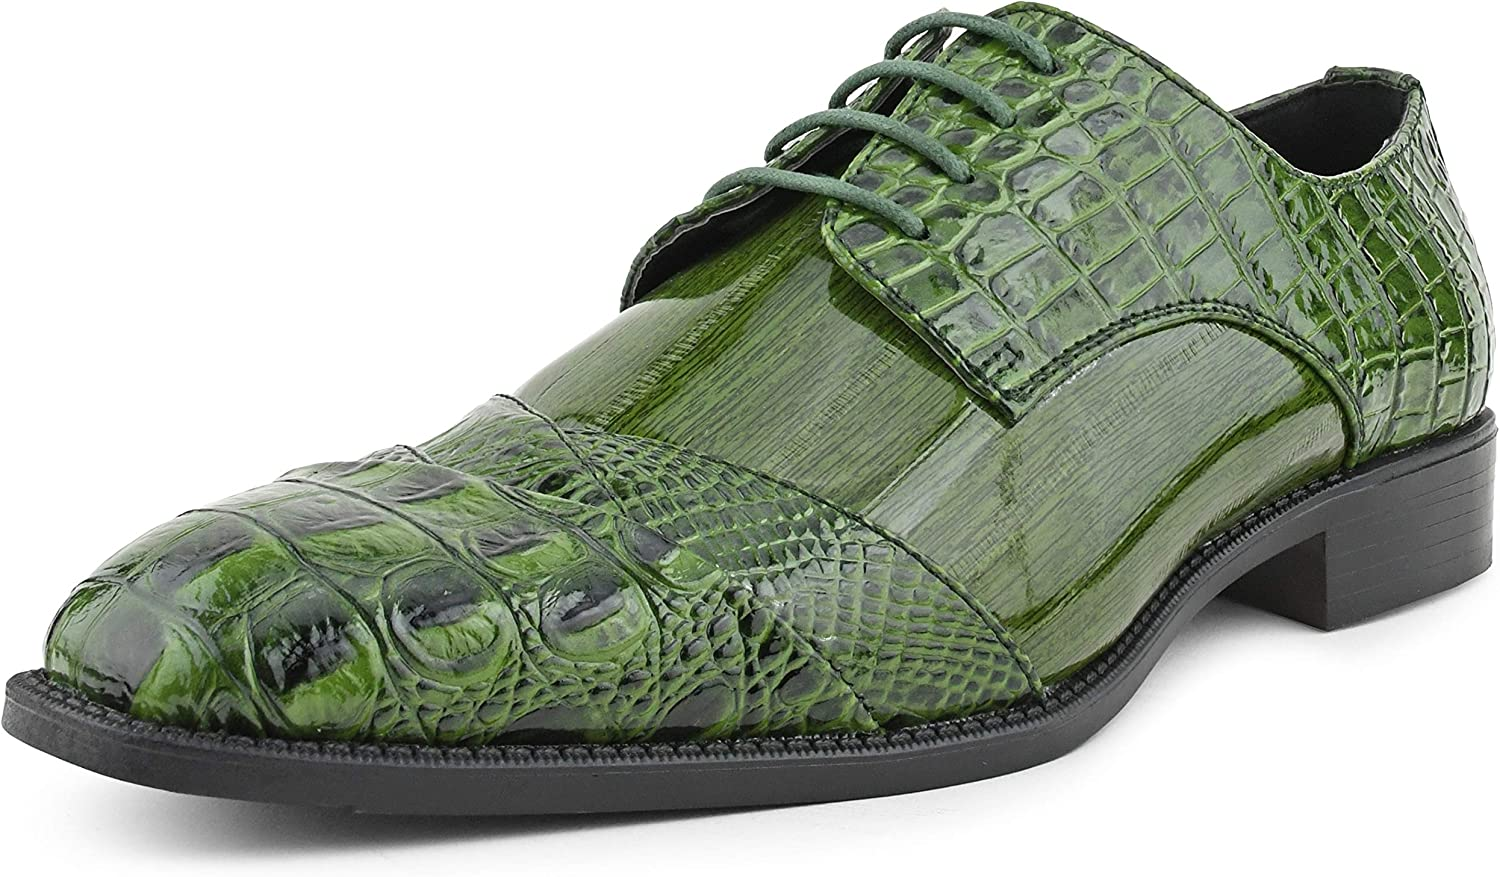 Bolano Bandit Men's Oxford Dress Shoes - Croc Folded Cap Toe Formal Dress Shoes for Men with Alligator Print and EEL Skin Trim - Designer Formal Shoes with Lace Tie